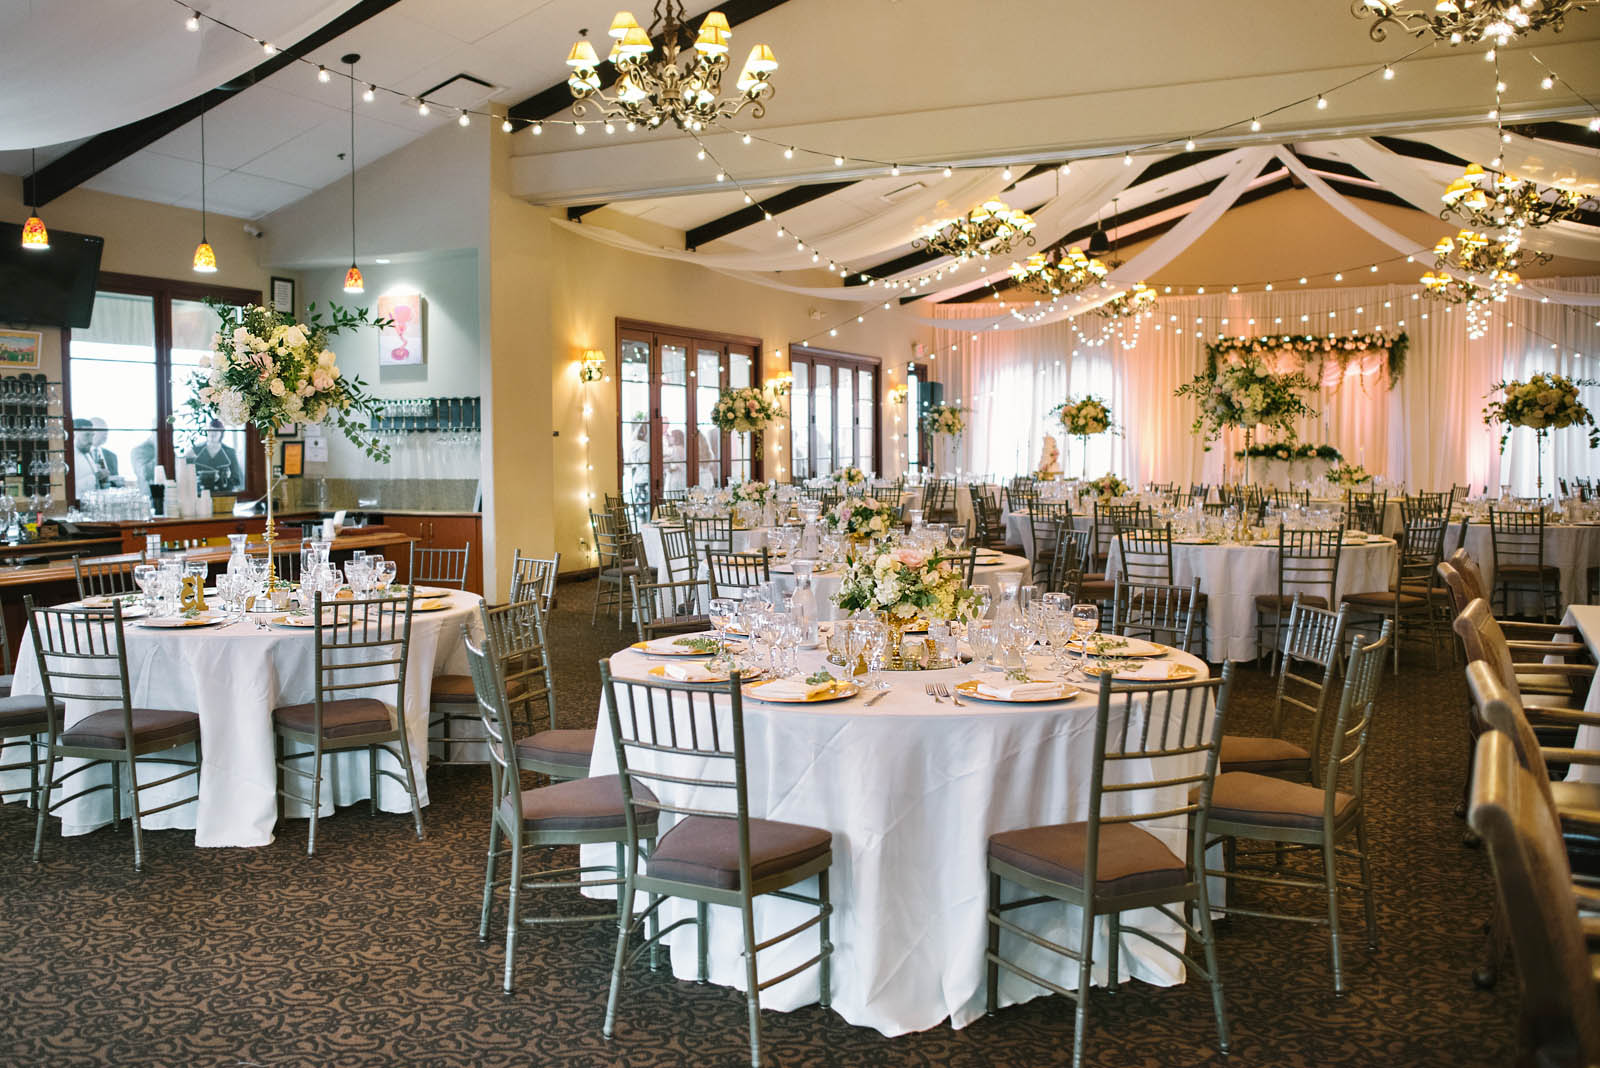 Your wedding reception features gorgeous twinkle lights, draping backdrop, chandeliers, and exclusive access to your private bar.